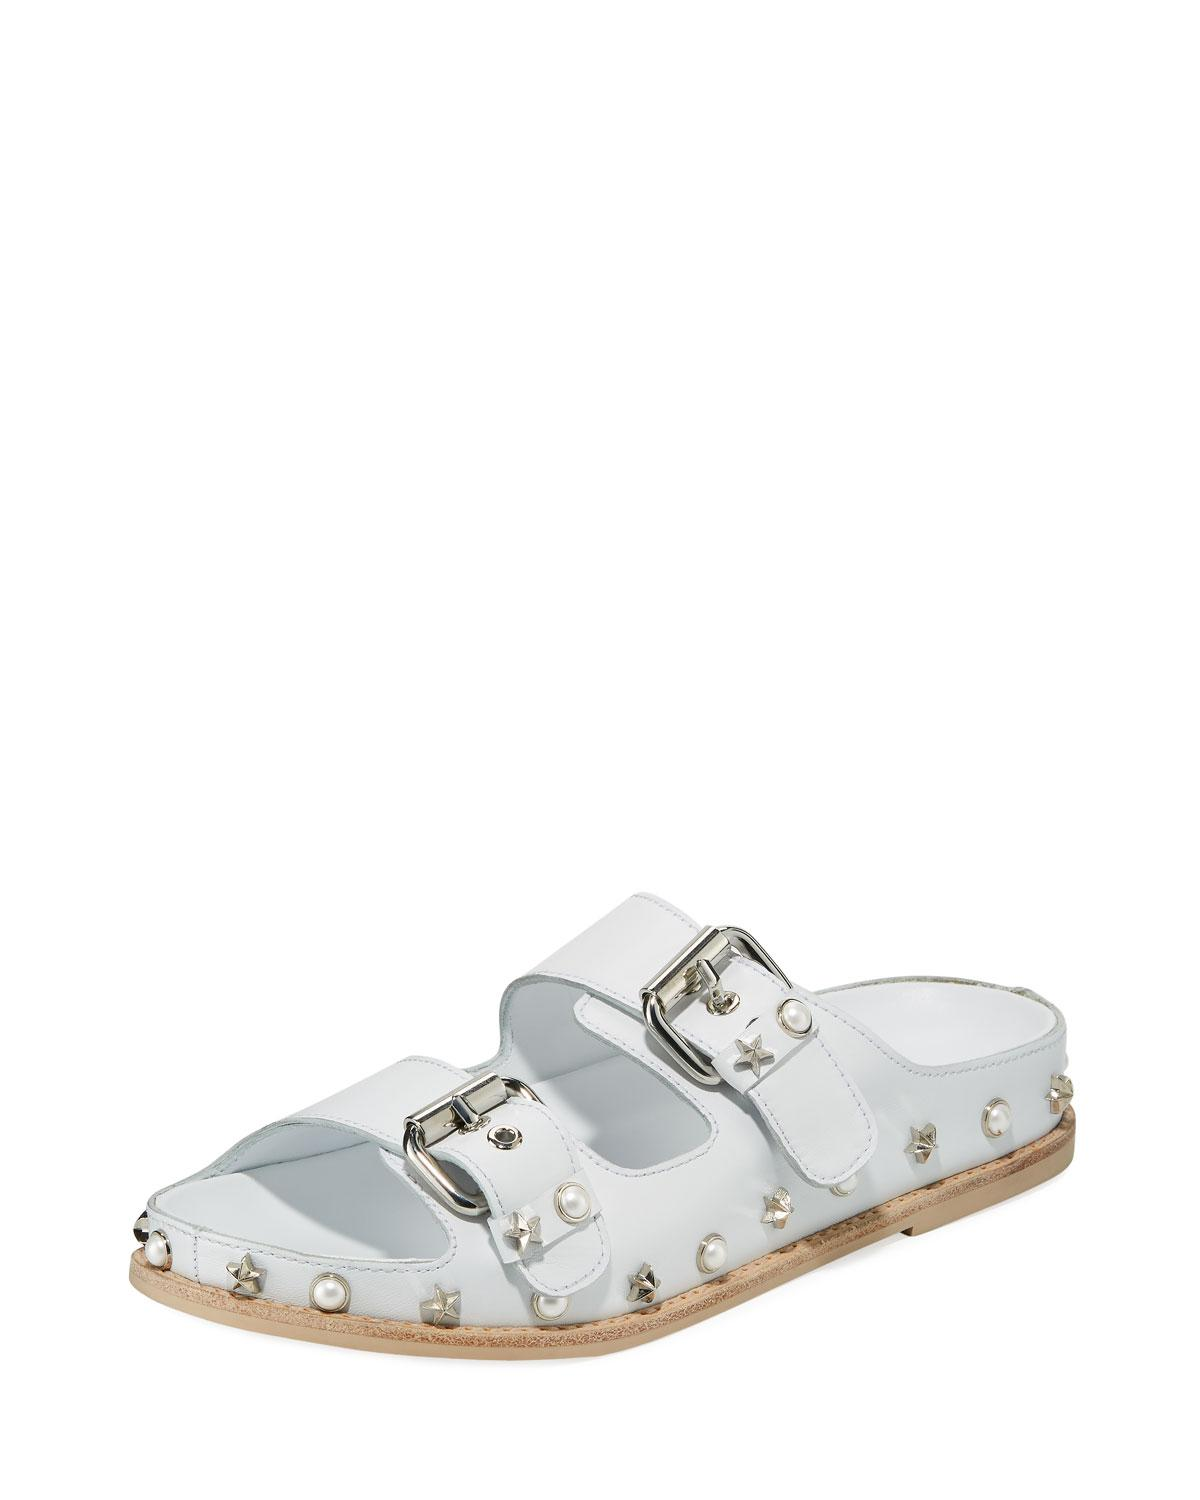 Sale With Credit Card Stuart Weitzman Women's Sandbar Embellished Leather Sandals Lowest Price Cheap Price Official Sale Online GyPXyf